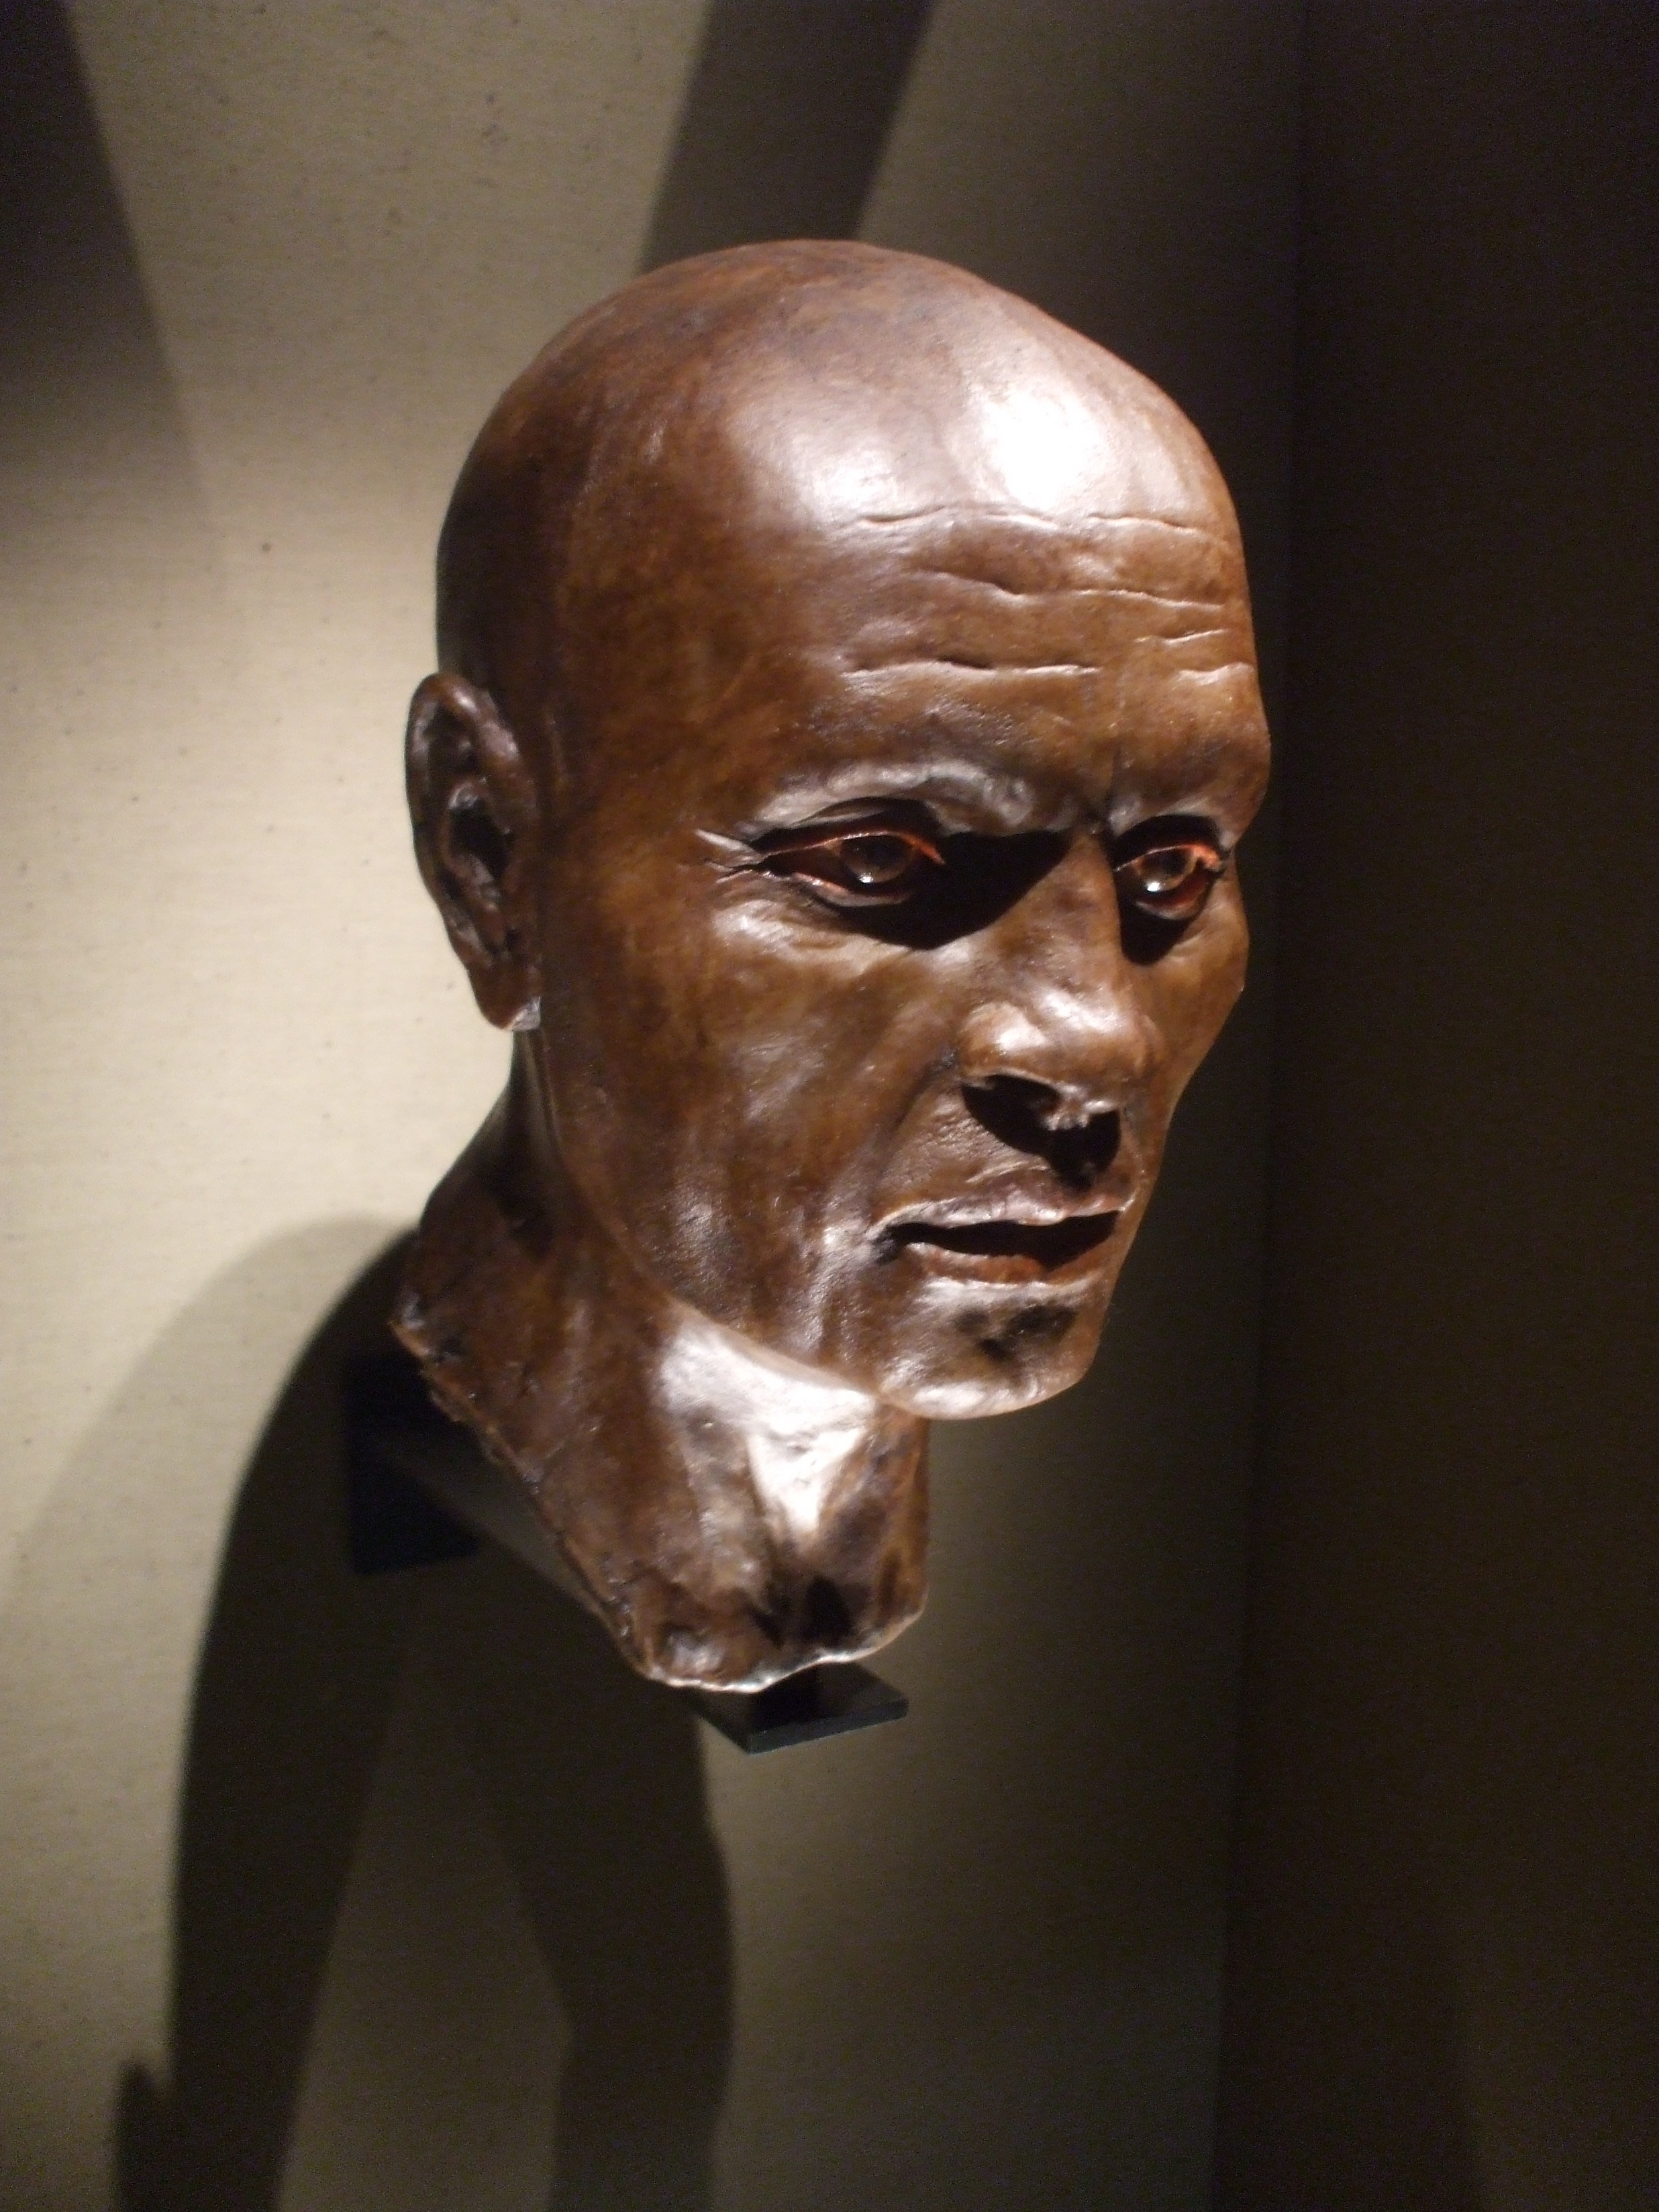 Photograph of a model of a man's head, with brown skin and shaved head.